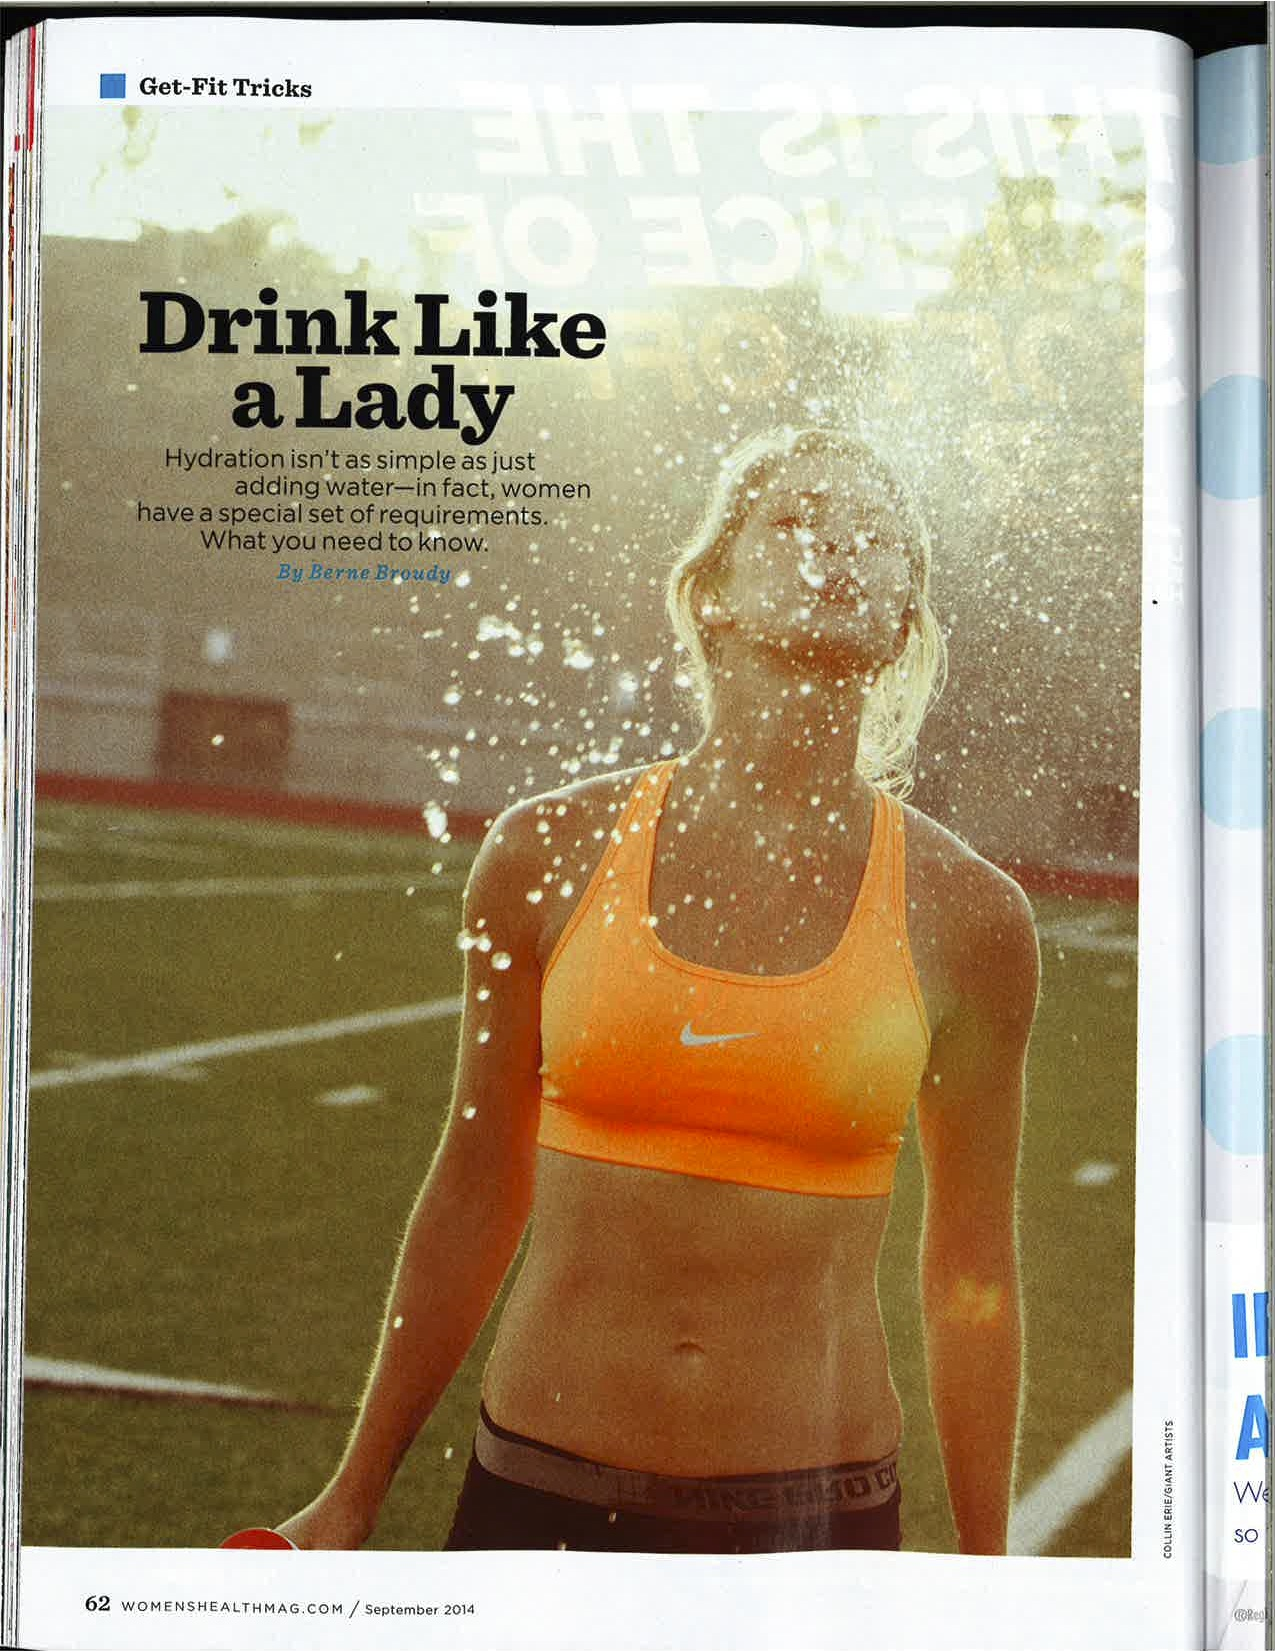 Something Is In The Water! Osmo Nutrition Makes A Media Splash With Science-Based Gender Specific Formulas